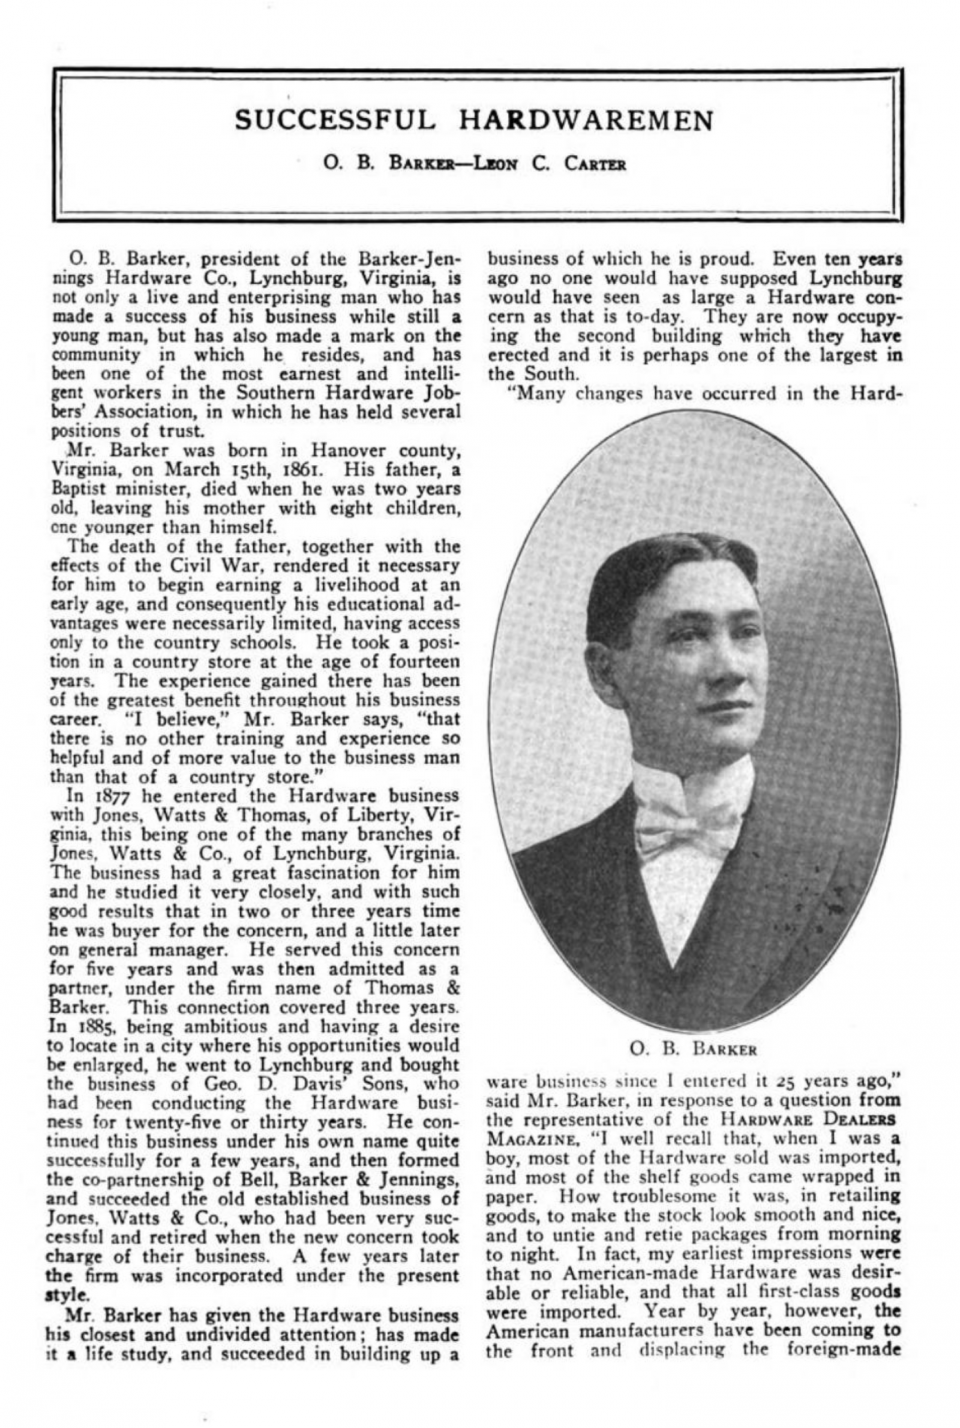 An article about O. B. Barker, president of the Barker-Jennings Hardware Co. in Lynchburg, VA. This was published in the Hardware Dealers Magazine in April 1905.